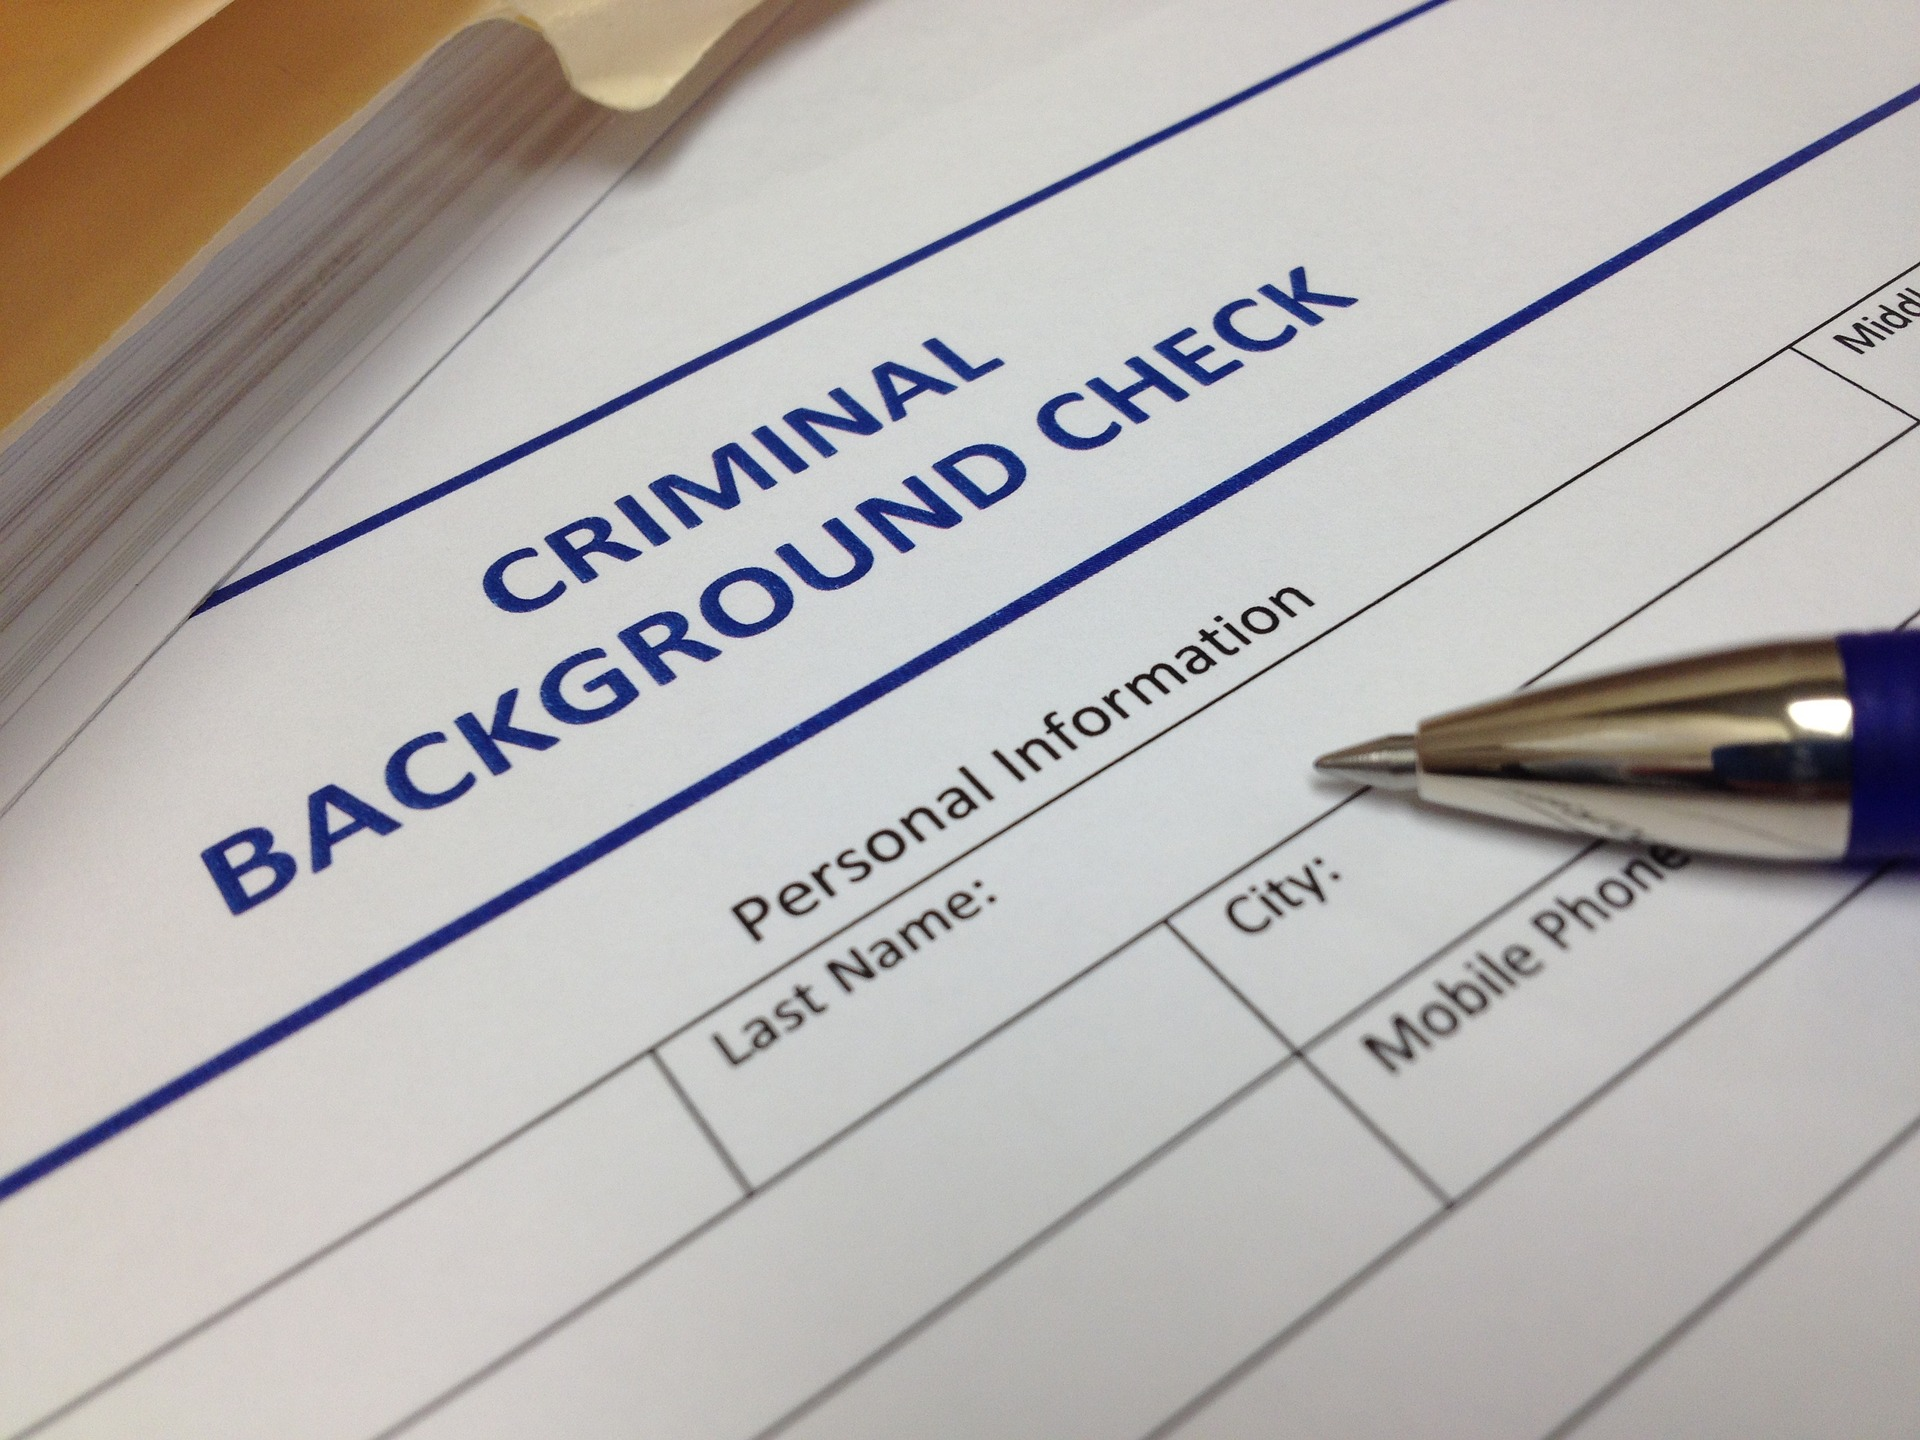 Comprehensive Criminal Employee Background Checks vs. Database-Driven Background Checks